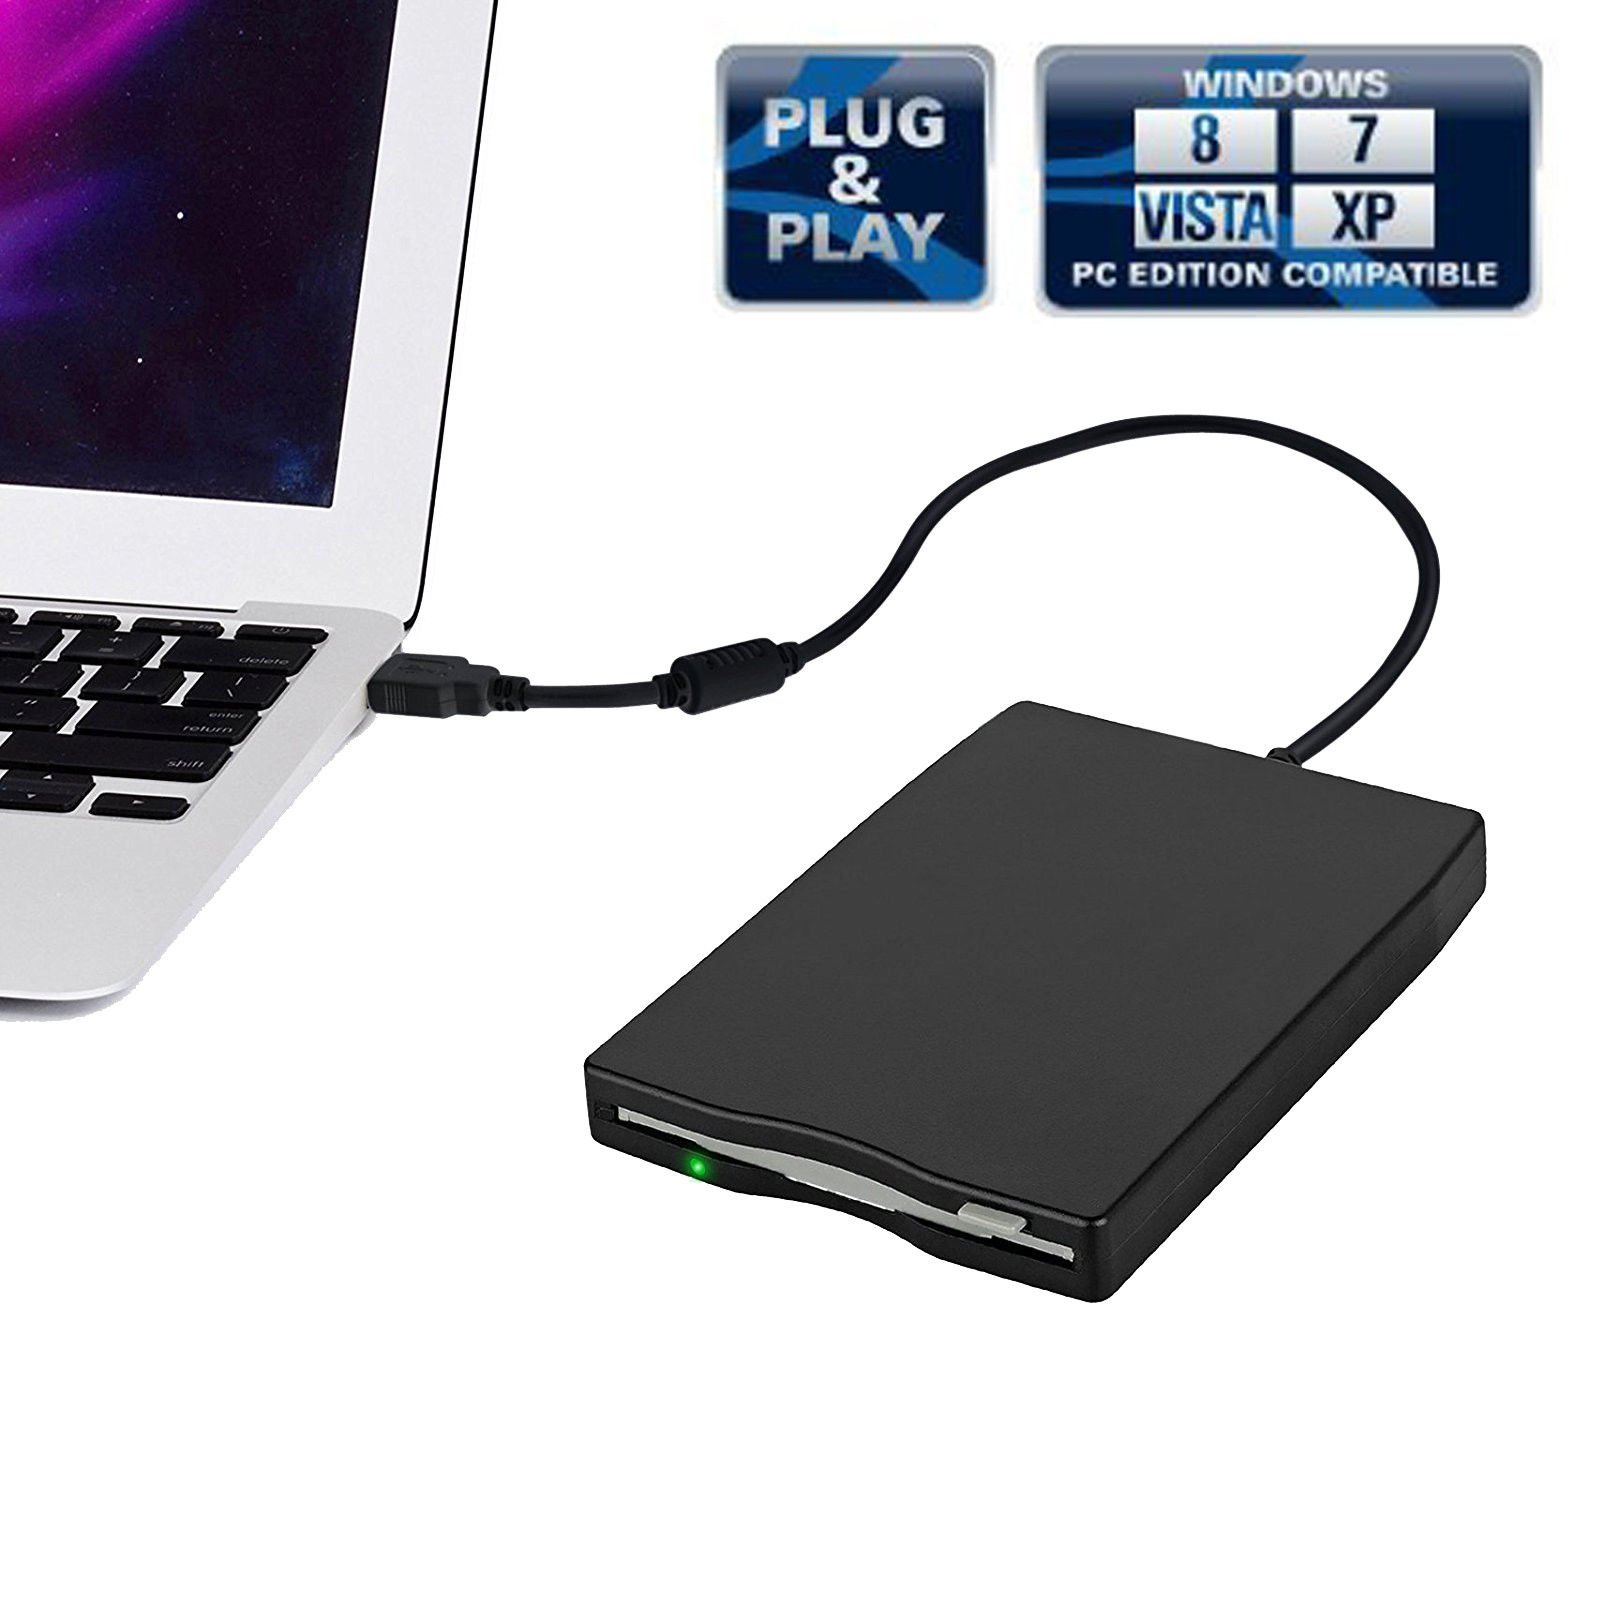 CAMWAY 3.5'' Portable USB 2.0 External Floppy Disk Drive 1.44MB for Laptop Desktop PC Win XP/7/8/10 by CAMWAY (Image #2)